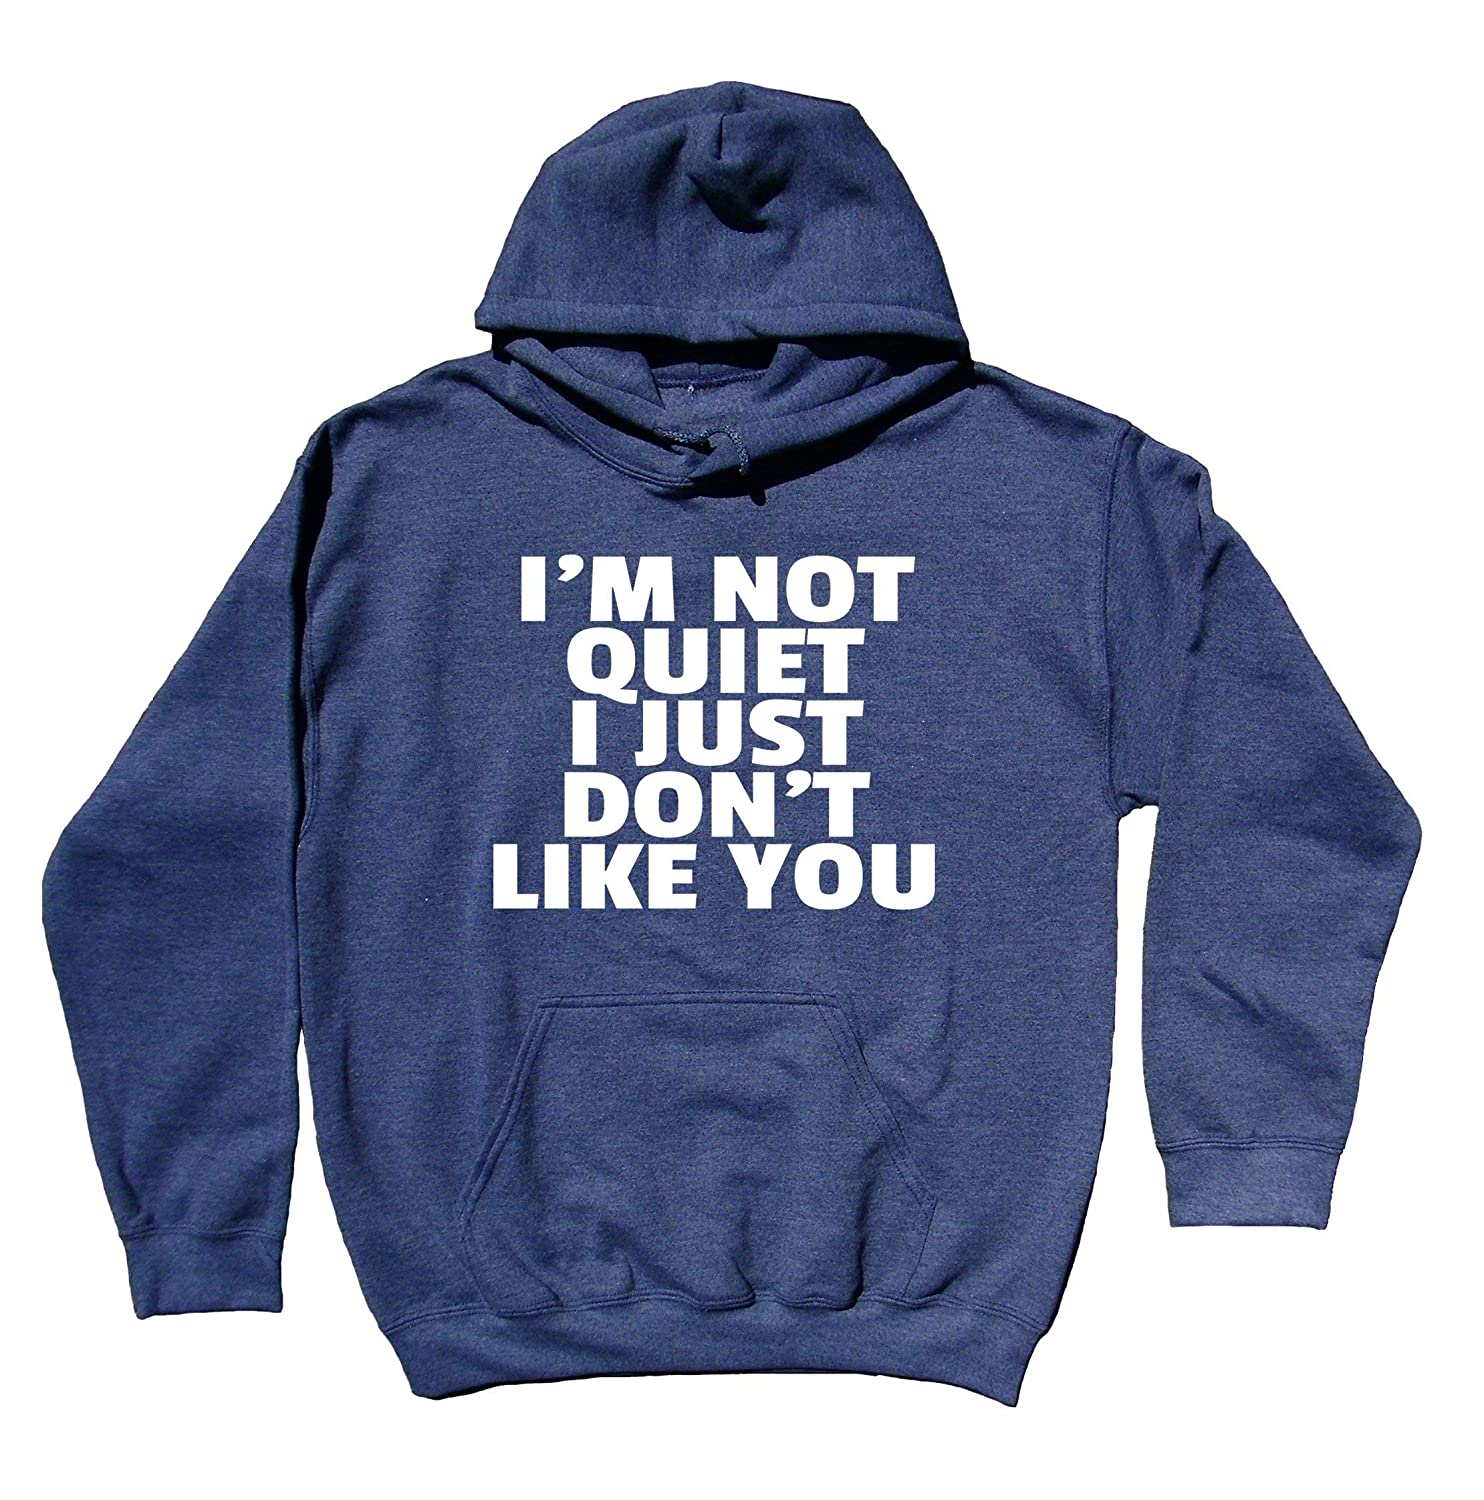 Sunray Clothing Rude Sweatshirt Im Not Quiet I Just Dont Like You Anti Social Sarcastic Hoodie